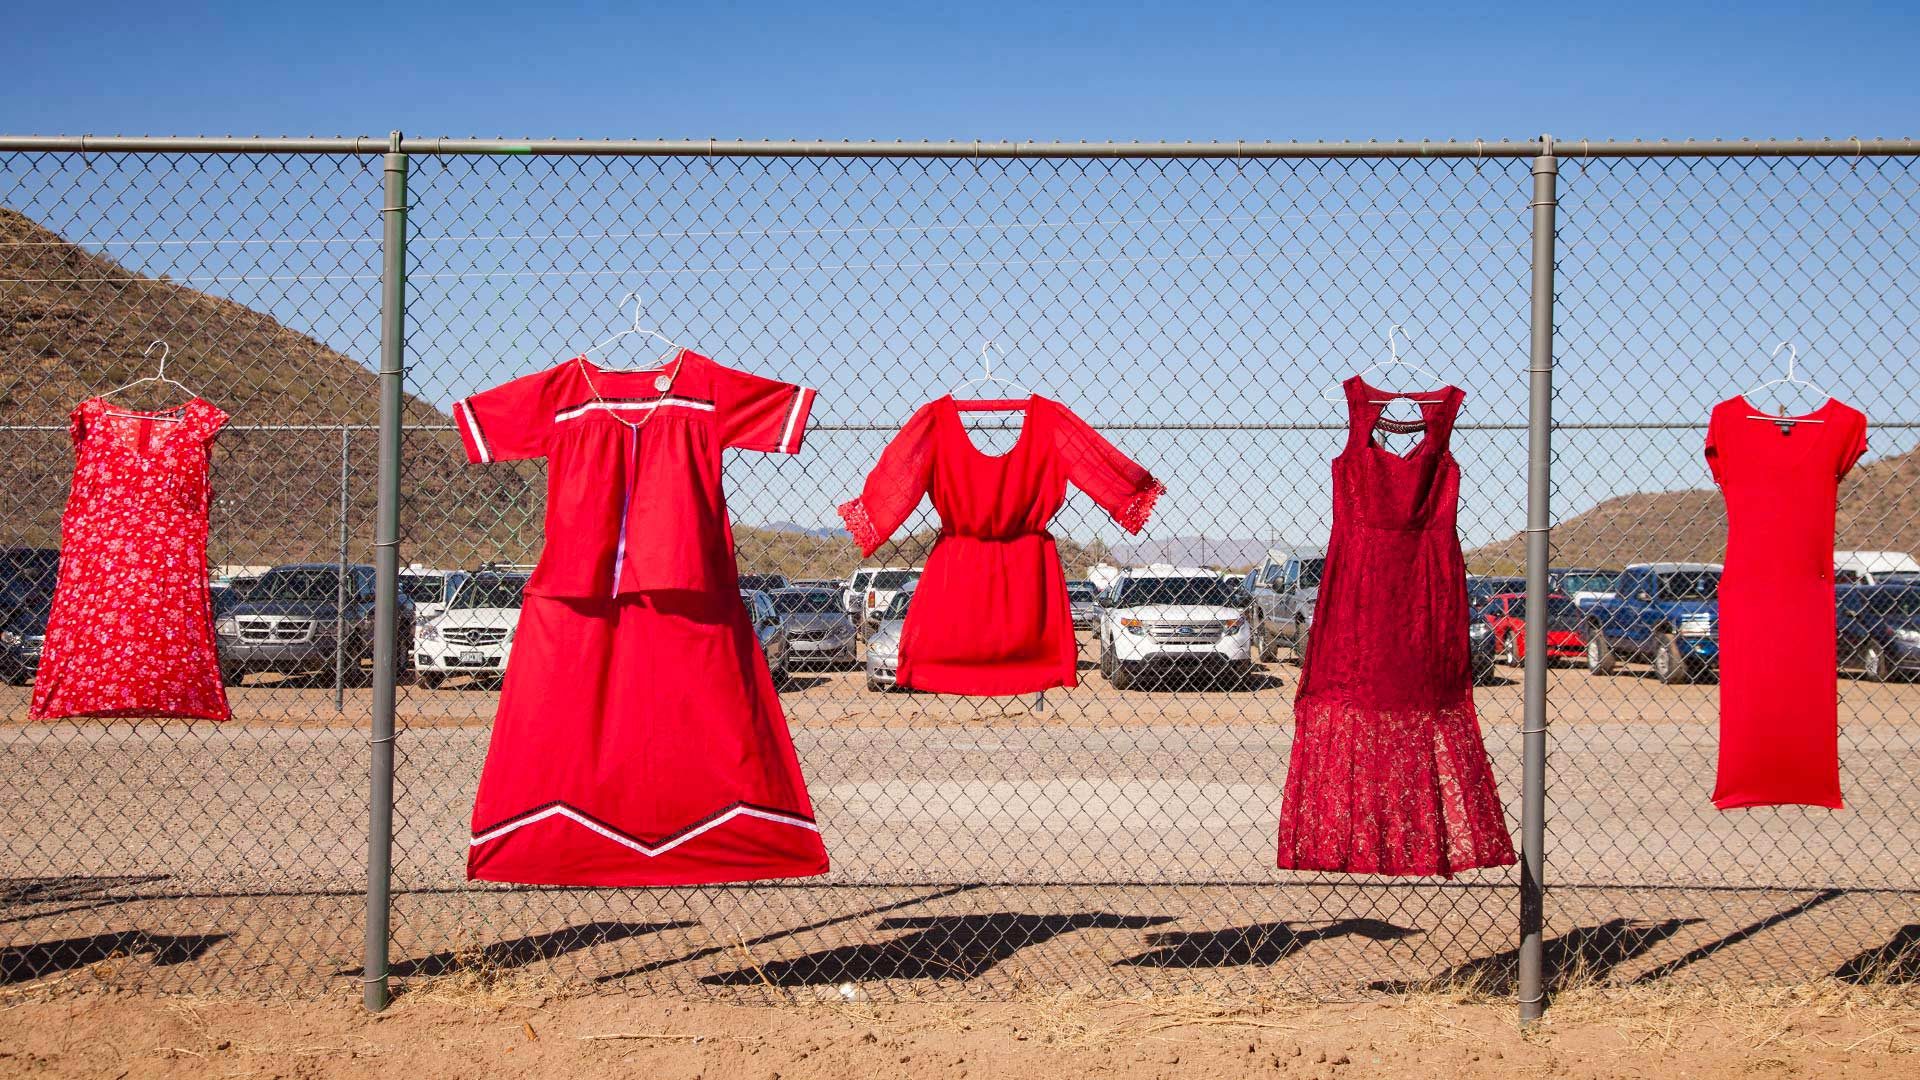 Red dresses representing missing and murdered indigenous women, displayed at the Verna N. Enos Toka Field on the Tohono O'odham Nation, 2018.